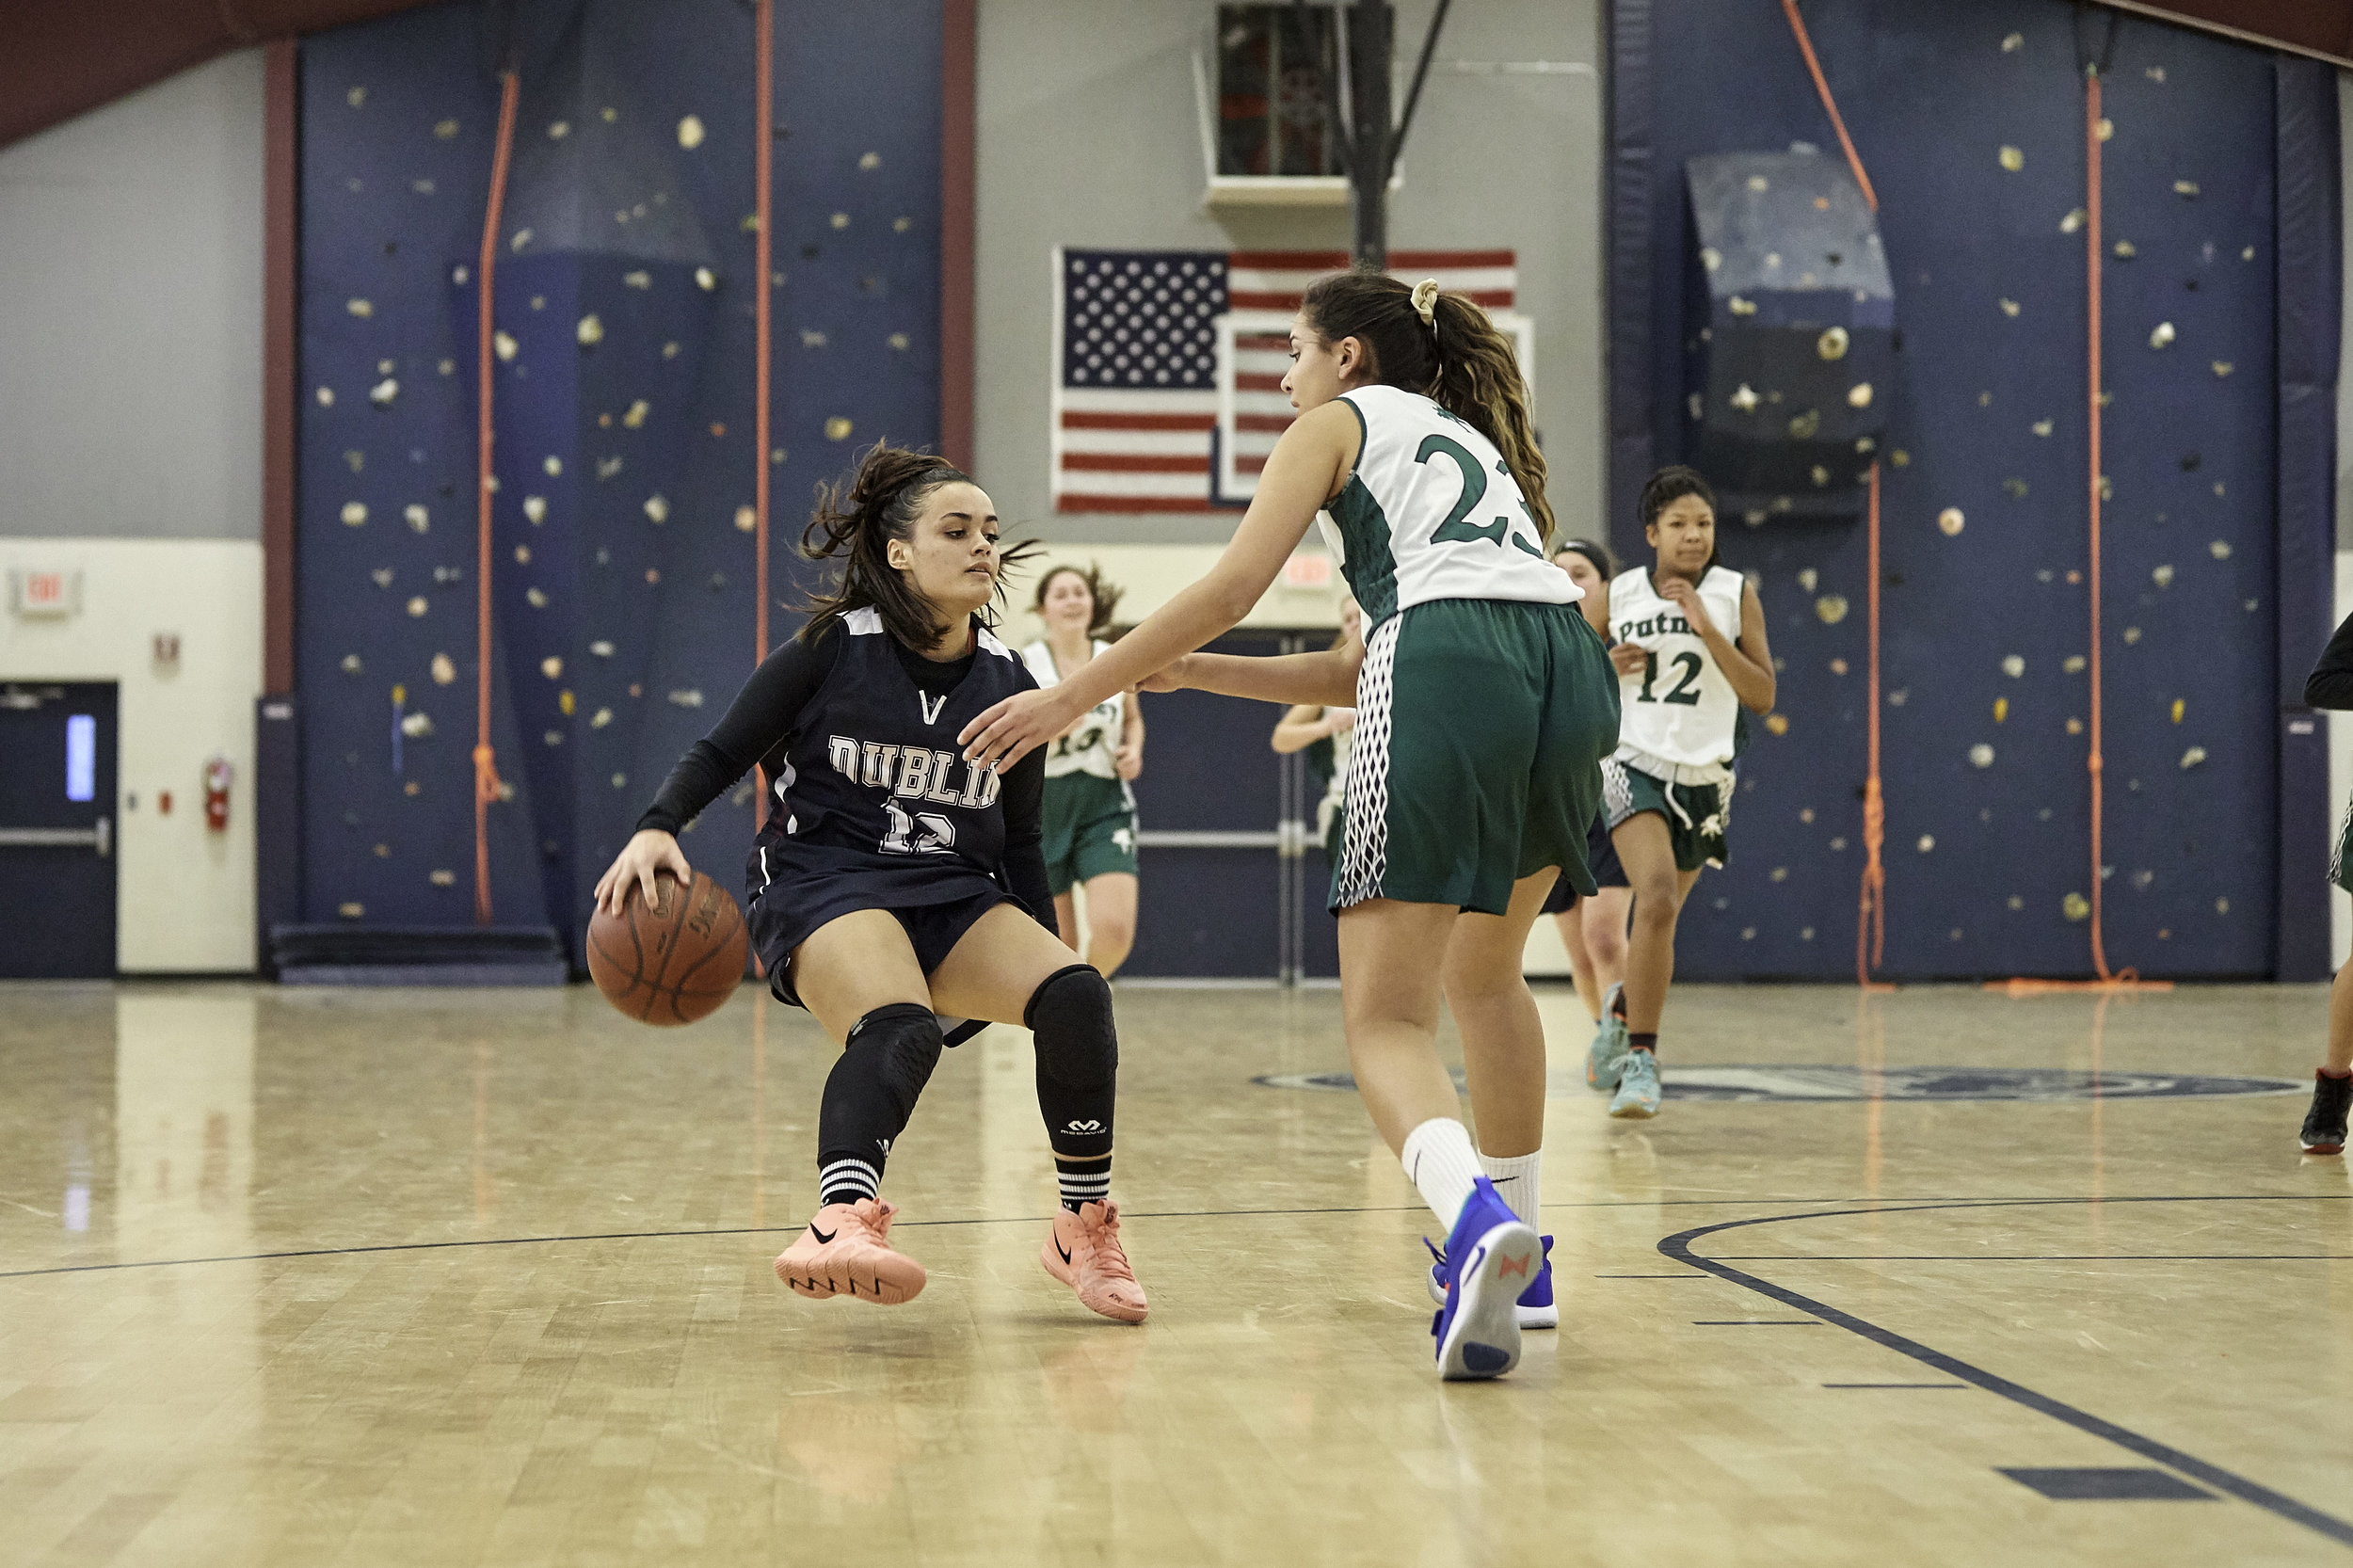 Basketball vs Putney School, February 9, 2019 - 167172.jpg